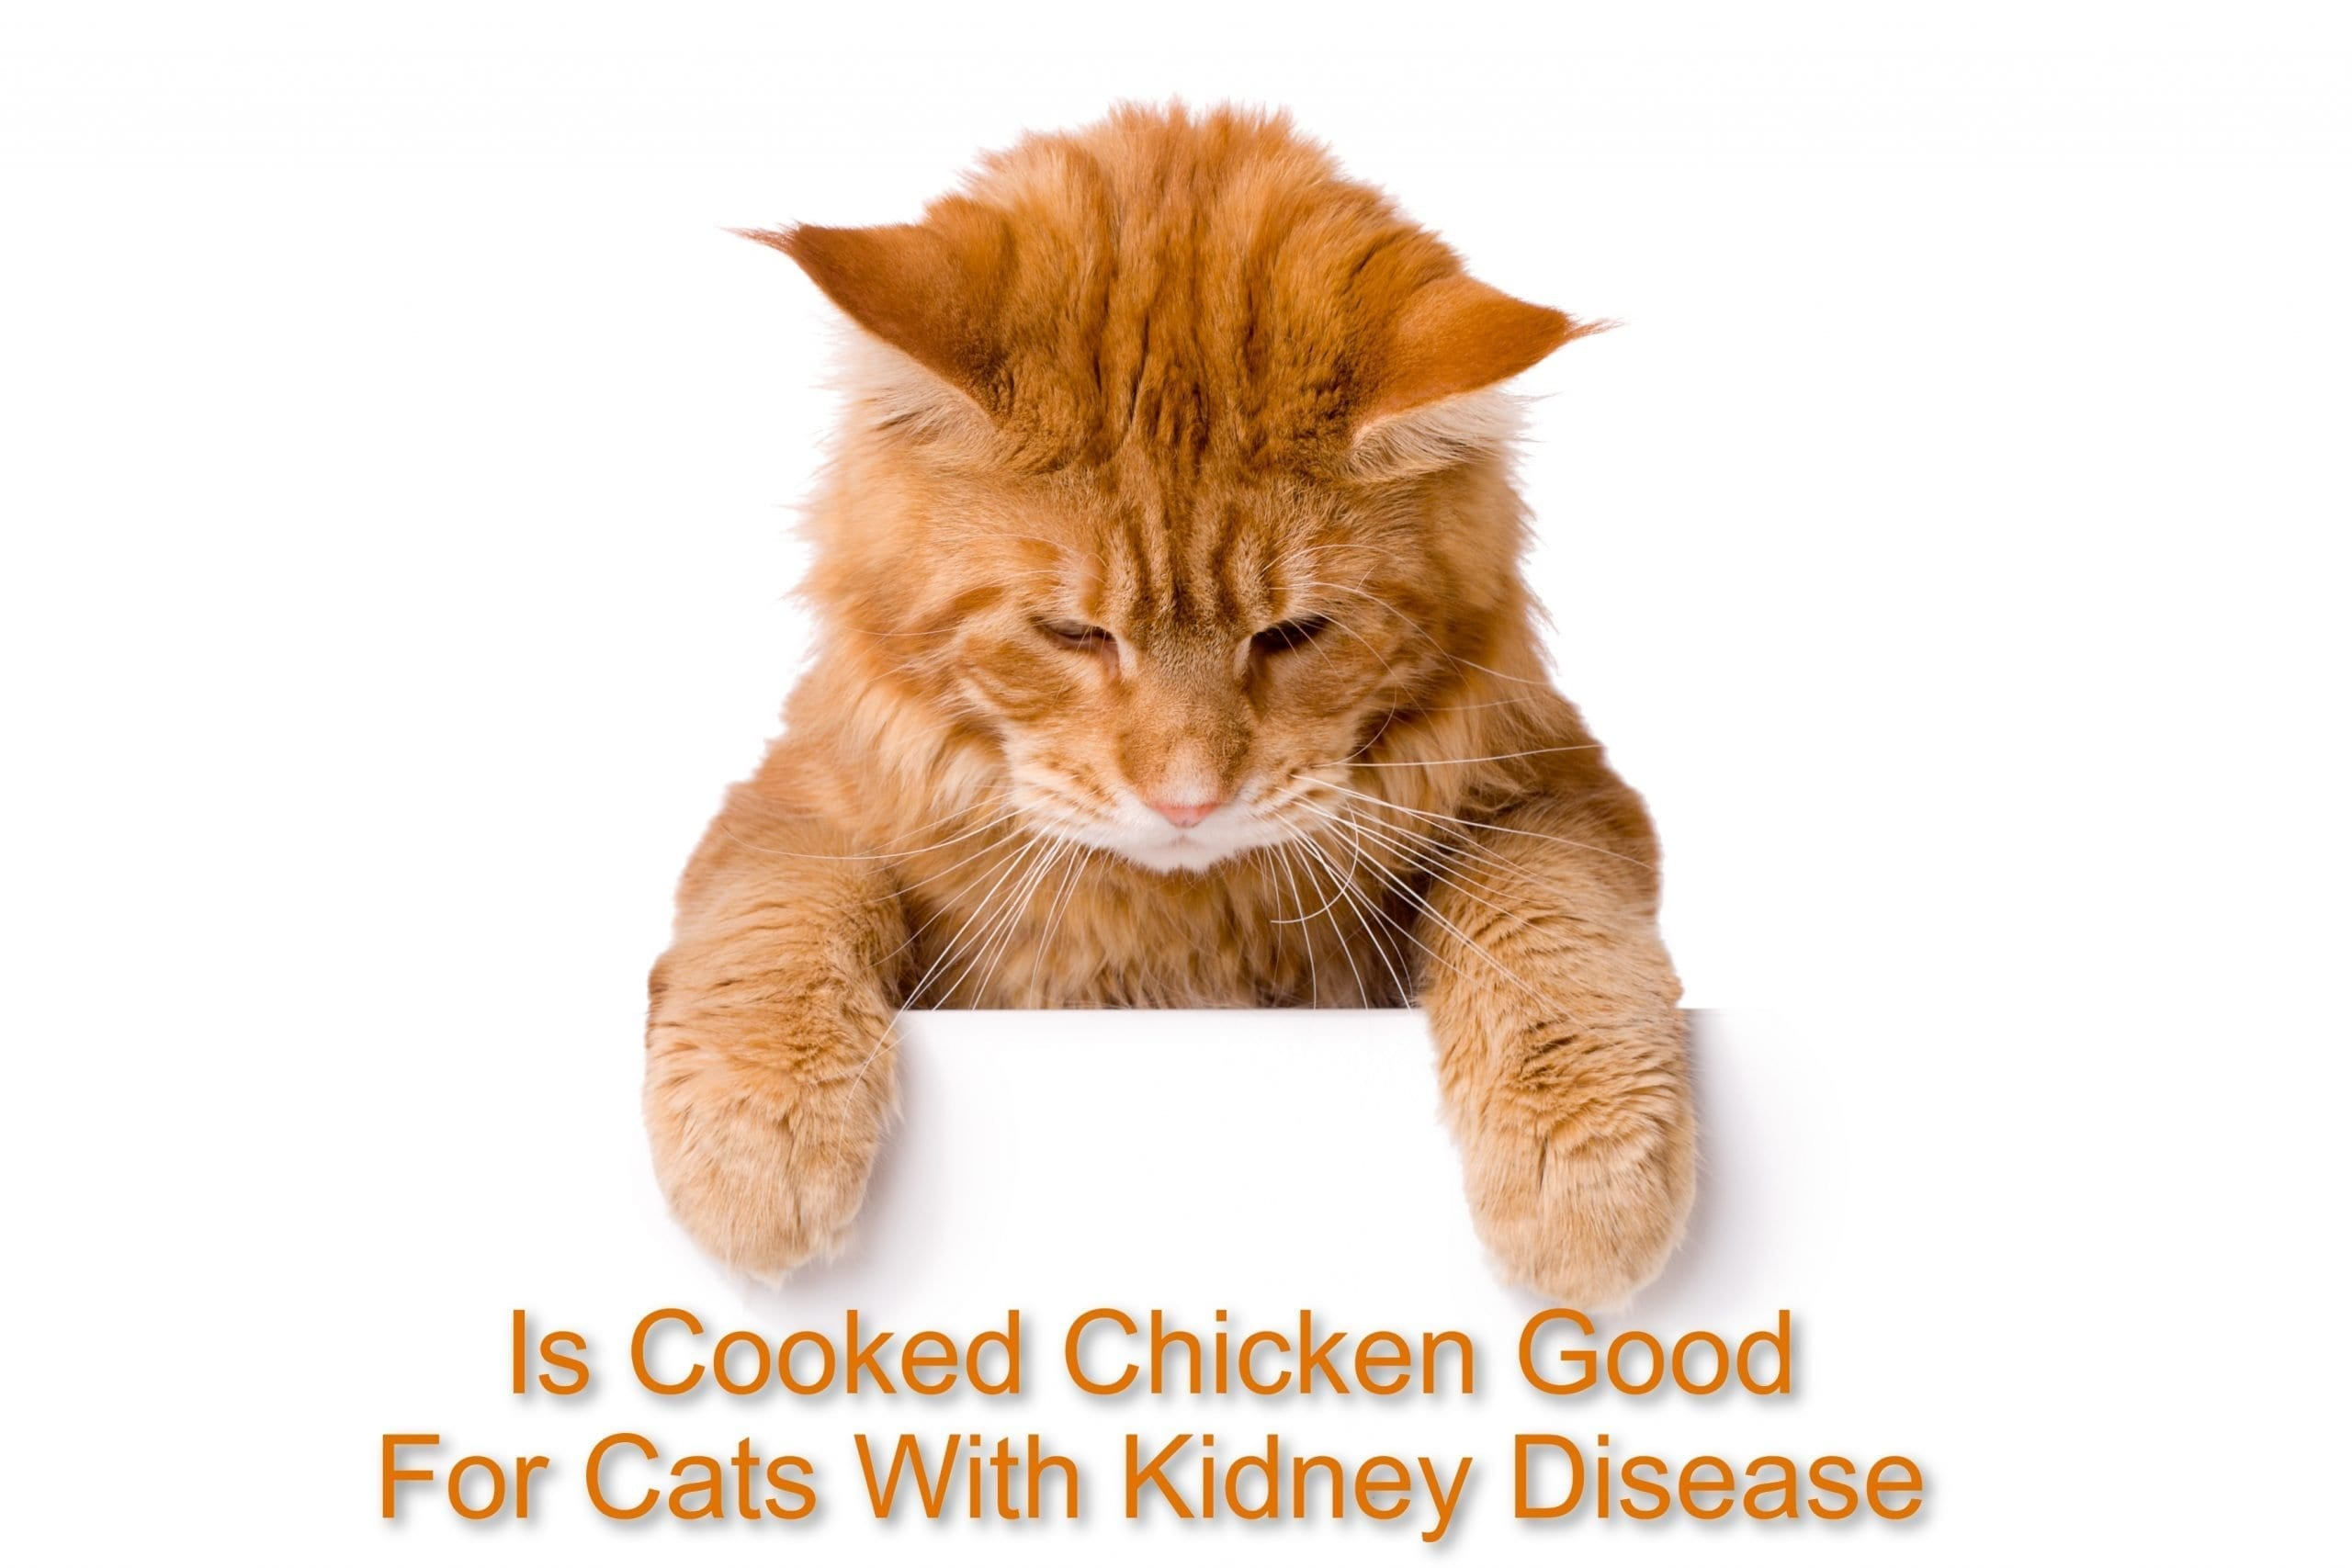 Is Cooked Chicken Good For Cats With Kidney Disease